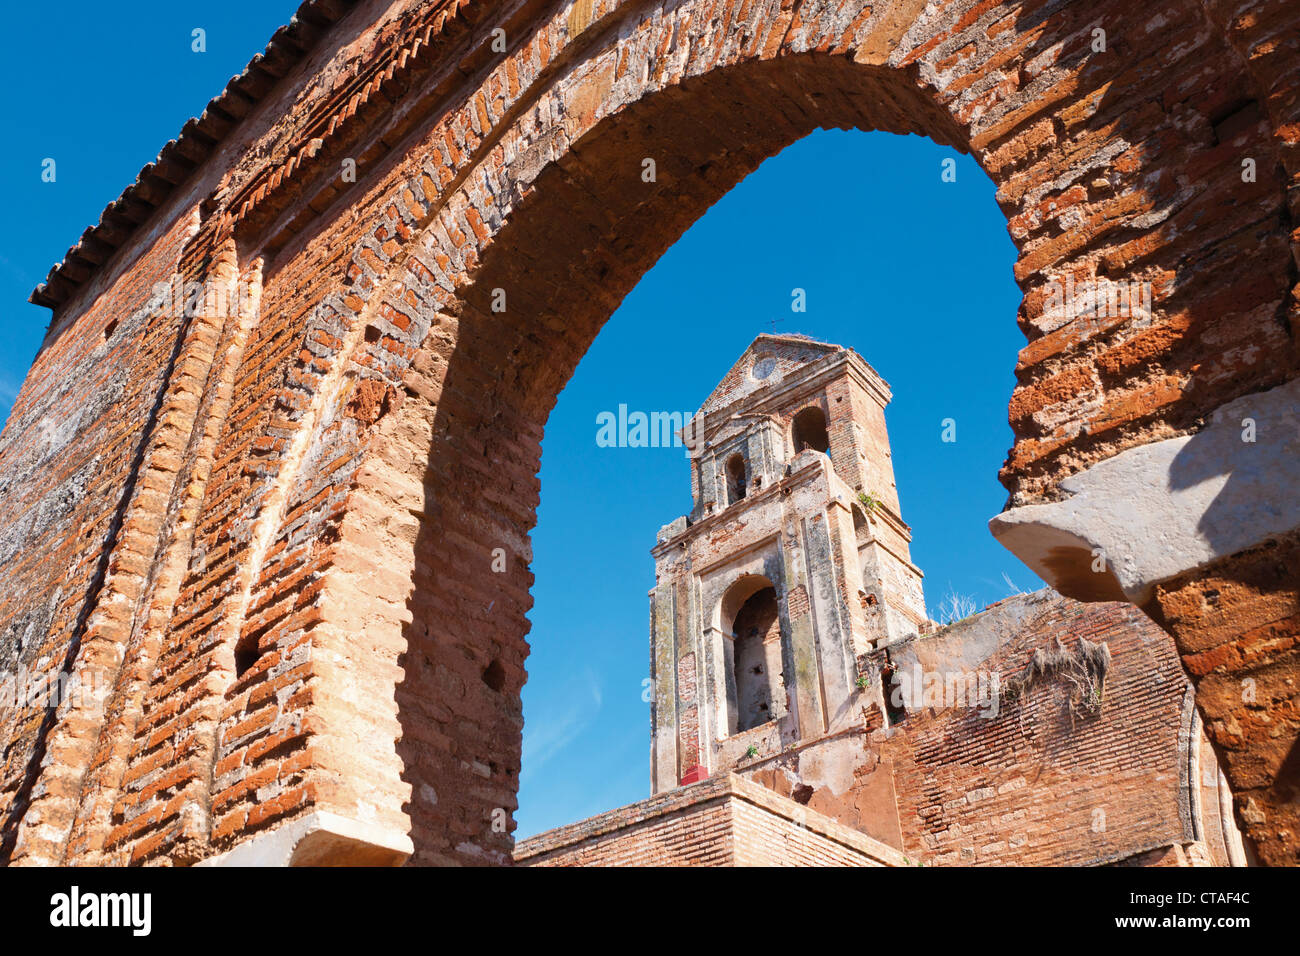 Niebla, Huelva Province, Andalusia, southern Spain. Ruins of the Church of Saint Martin. Iglesia de San Martin. - Stock Image